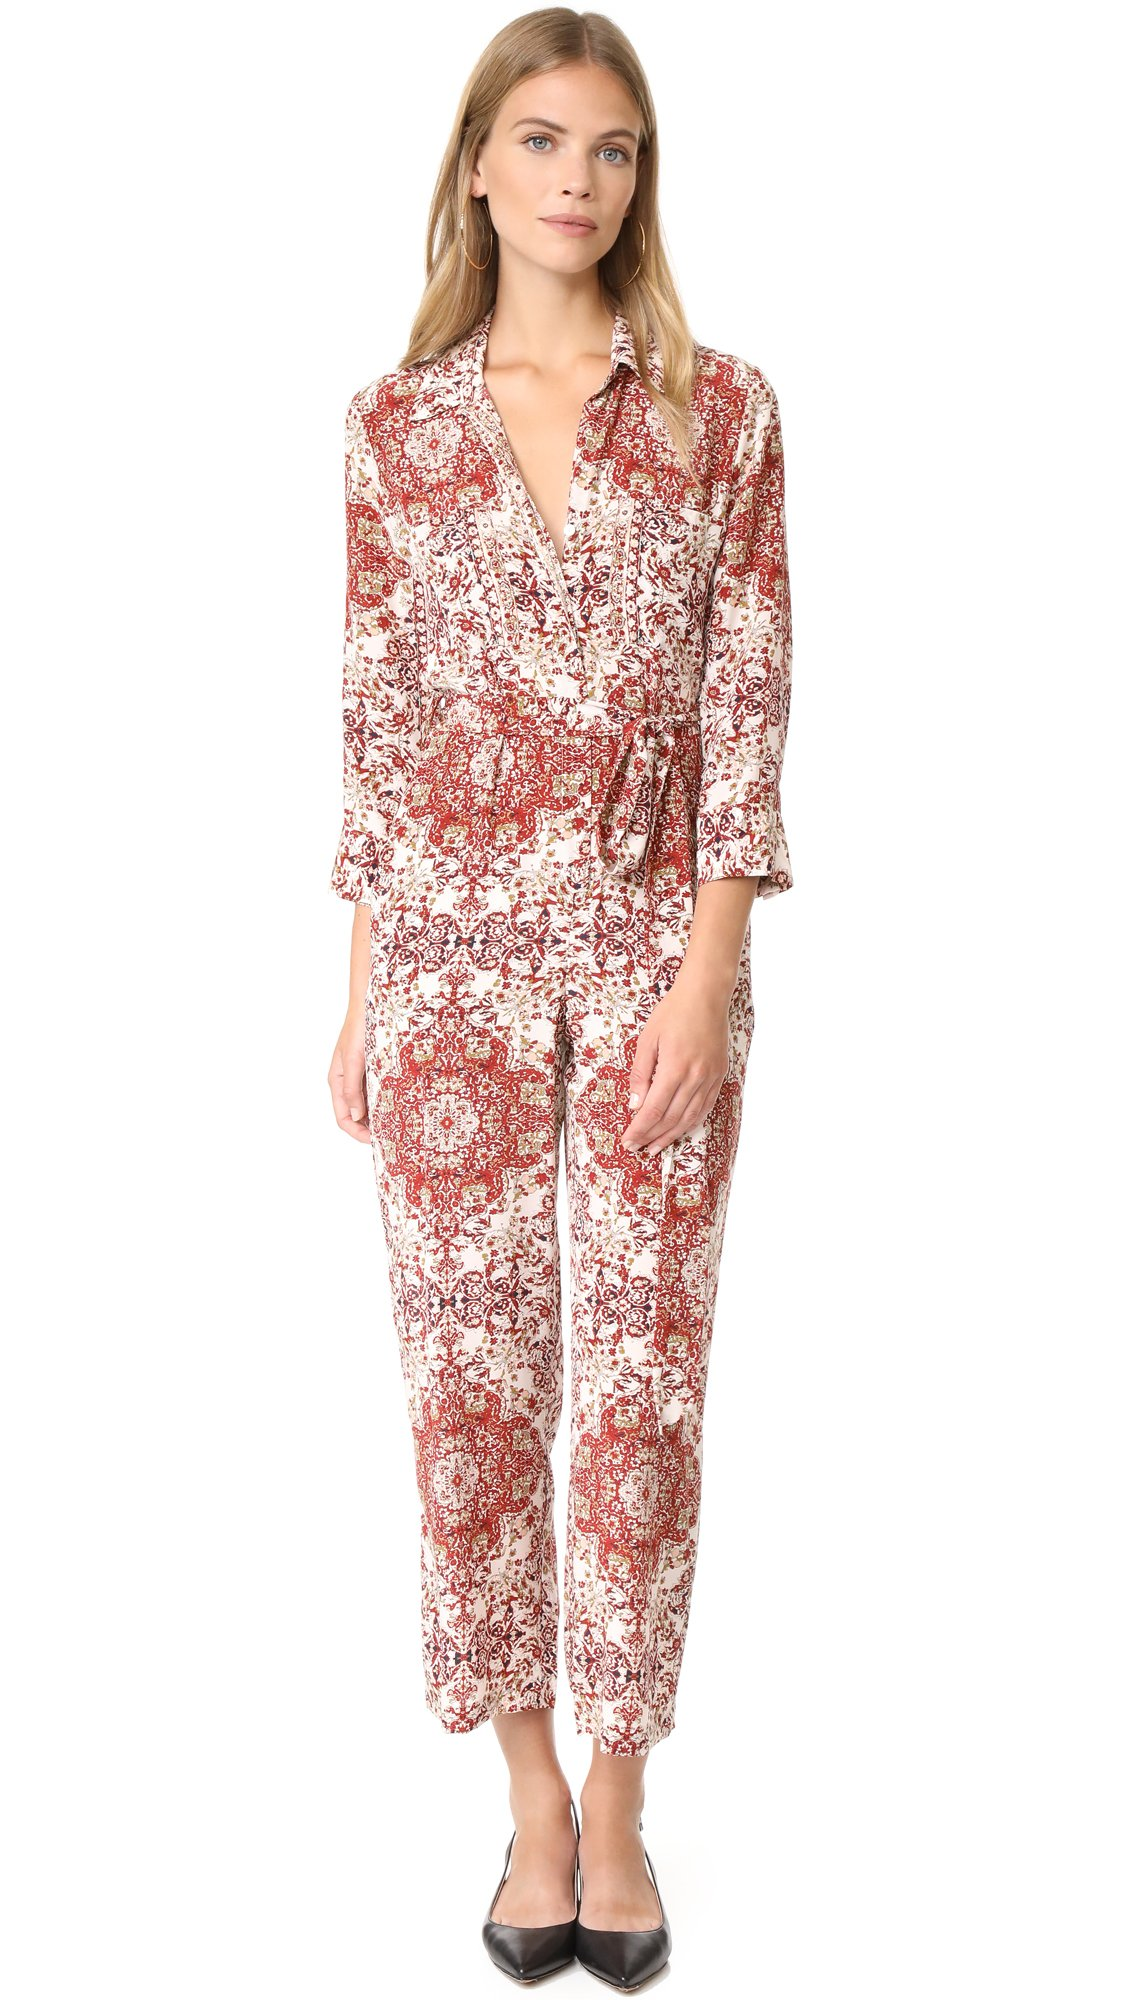 L'AGENCE Women's Delia 3/4 Sleeve Jumpsuit, Rhubarb Multi, 10 by L'agence (Image #1)